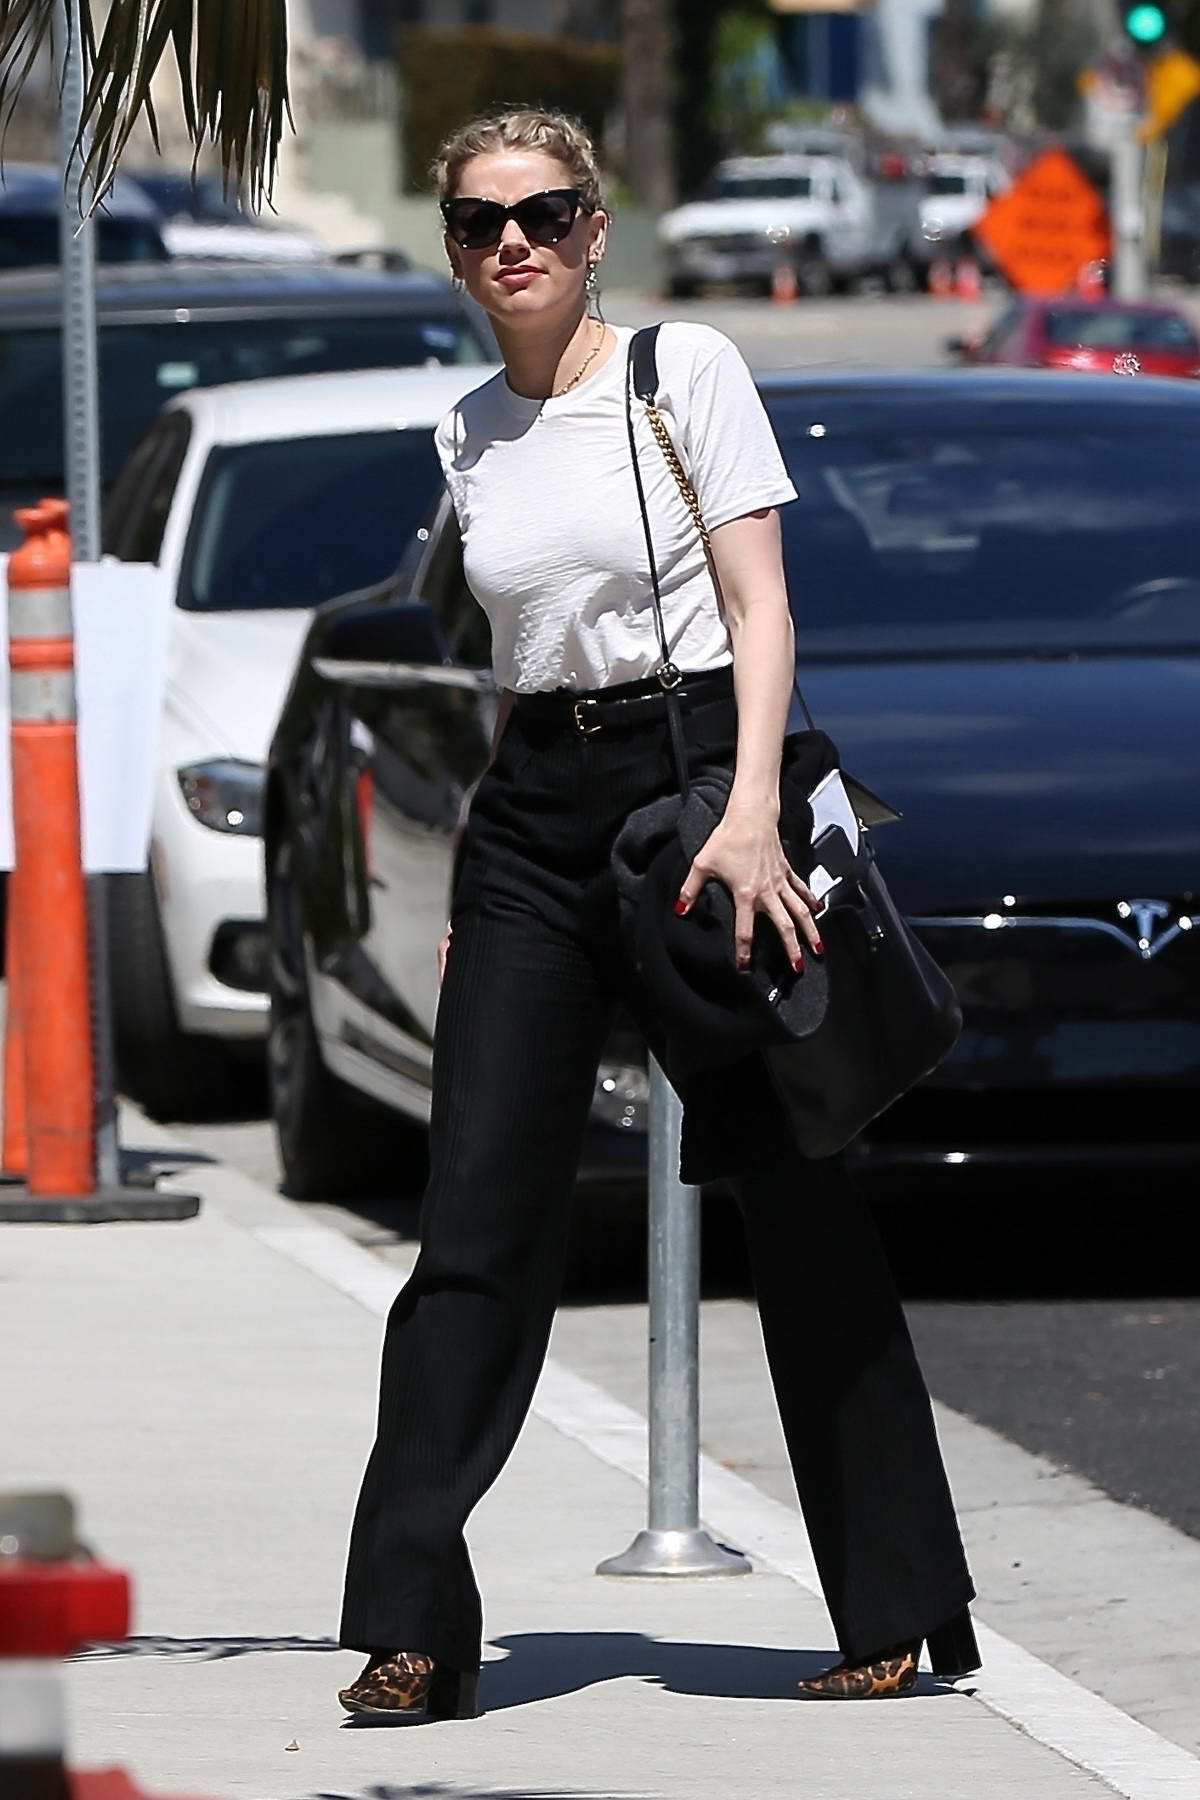 Amber Heard dressed for business as she heads to a meeting at San Vicente Bungalow in West Hollywood, Los Angeles